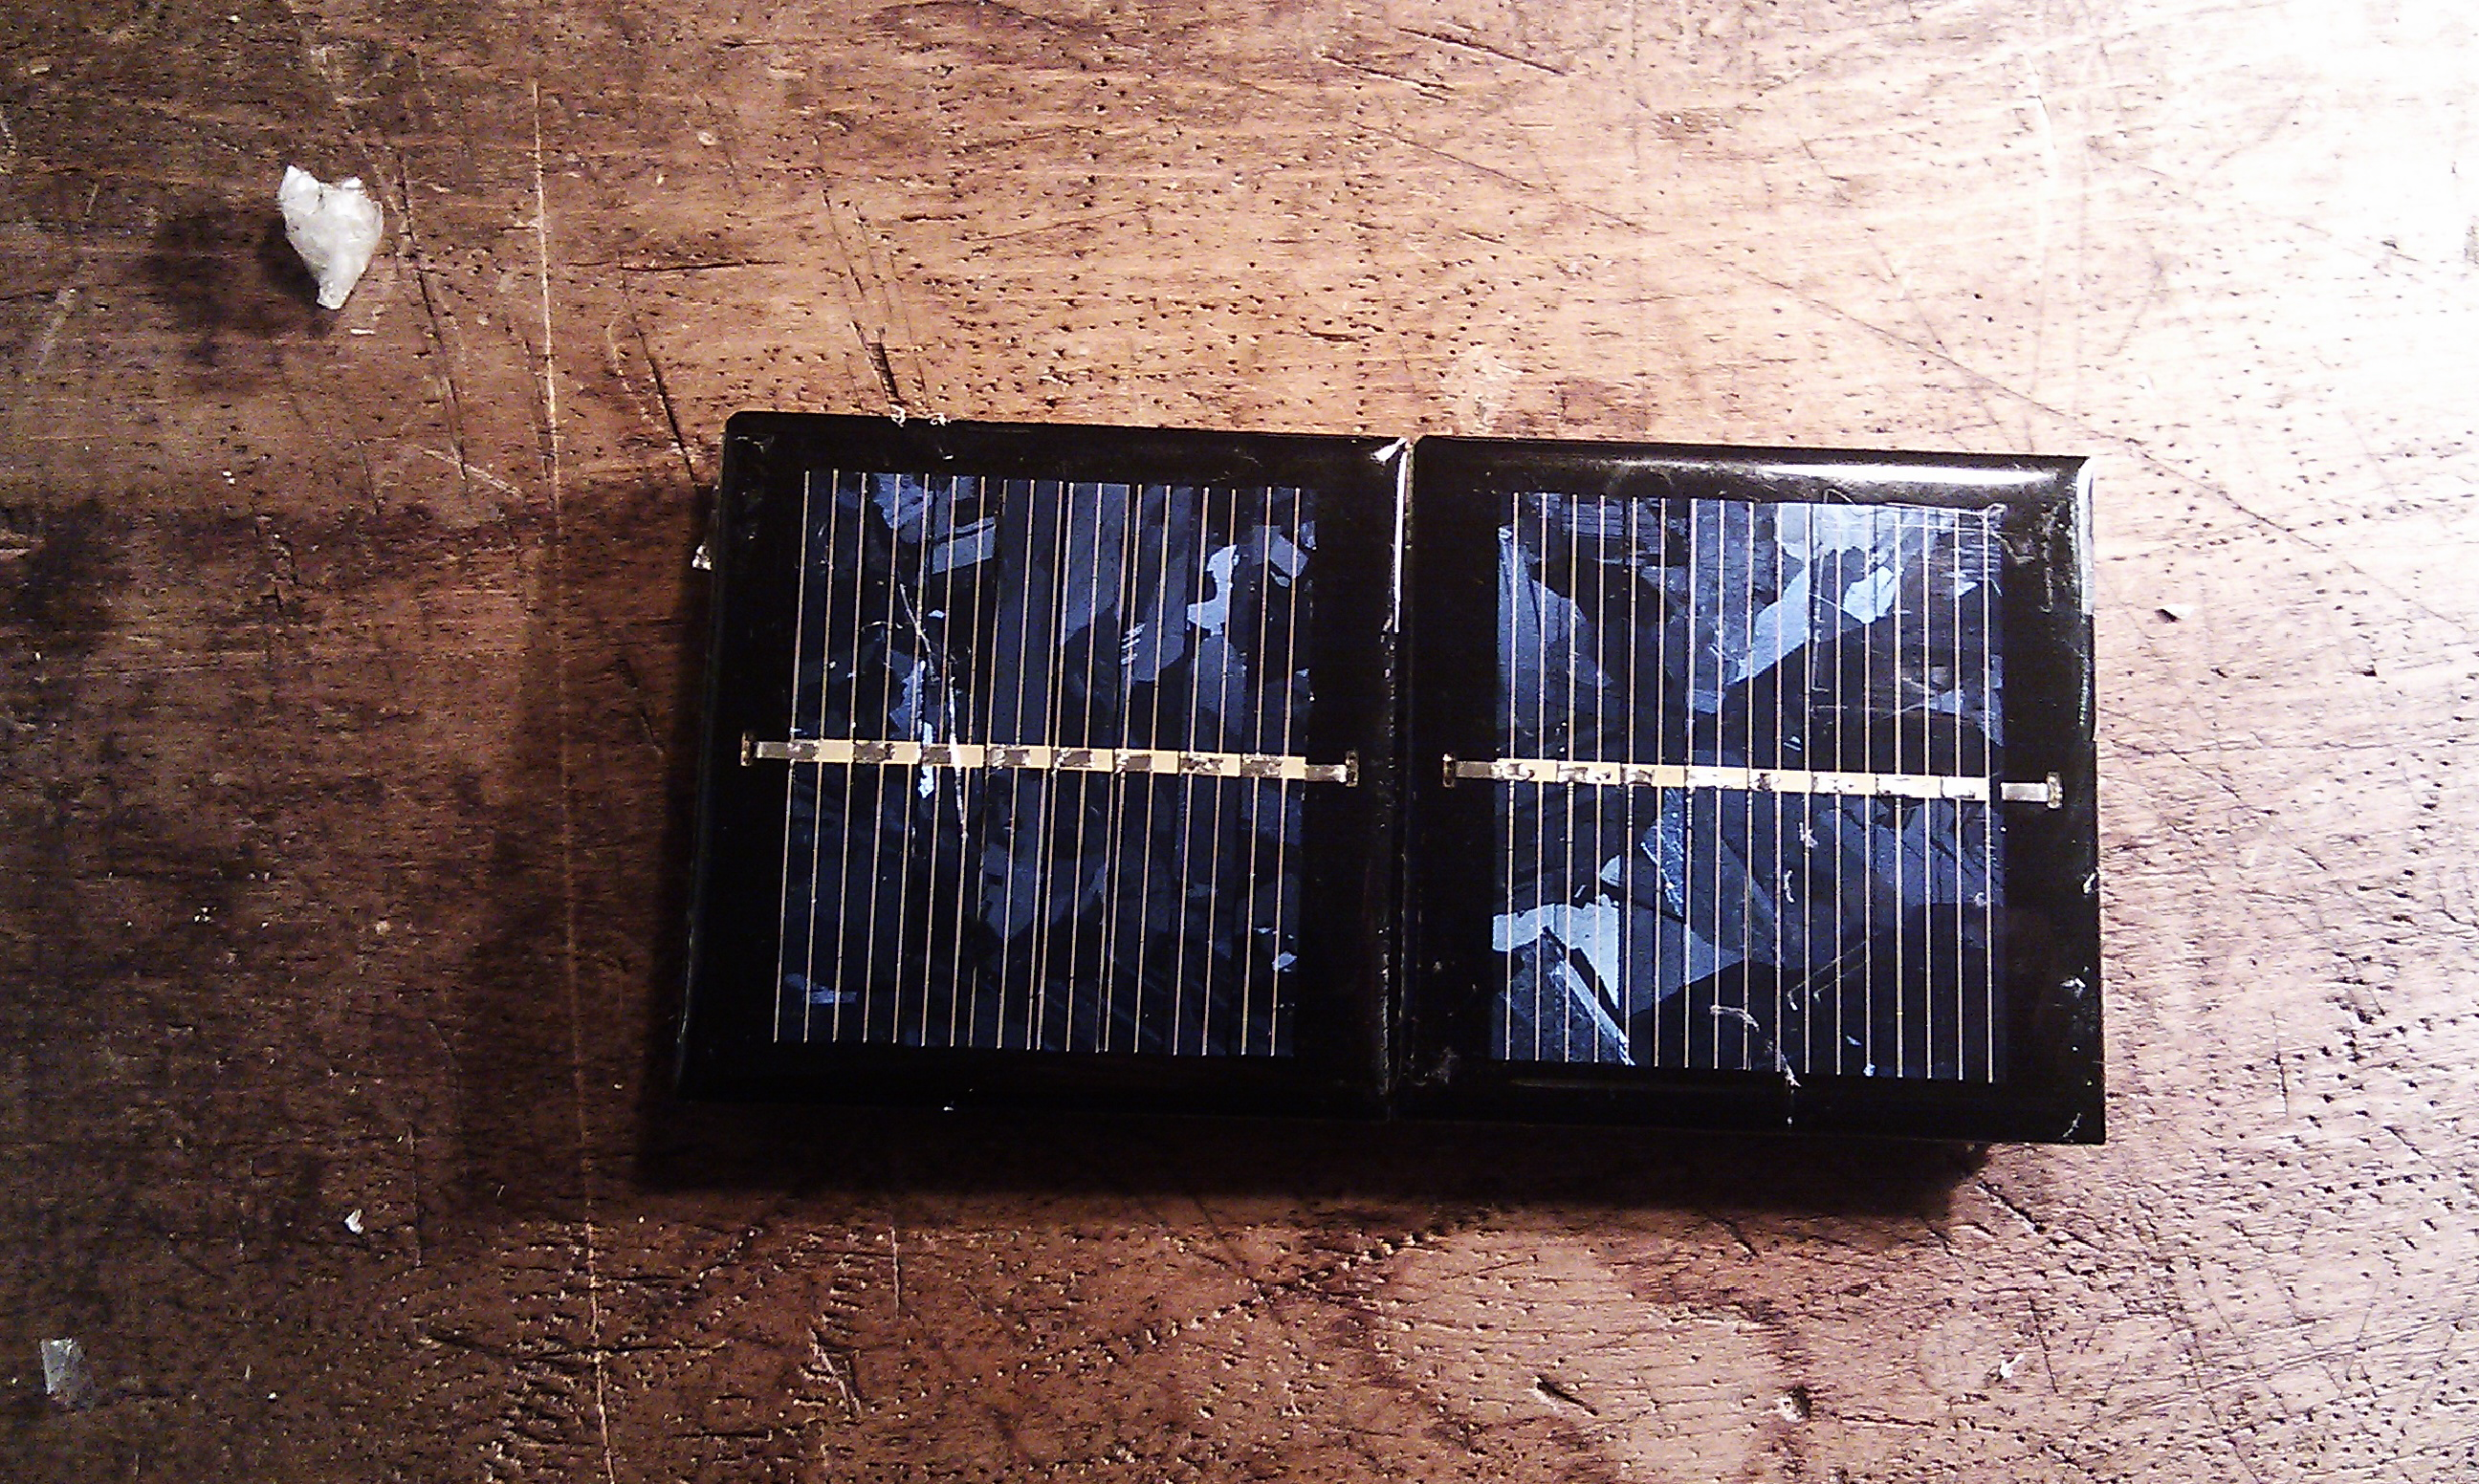 Solar Powered USB Charger (phones, MP3 players etc)